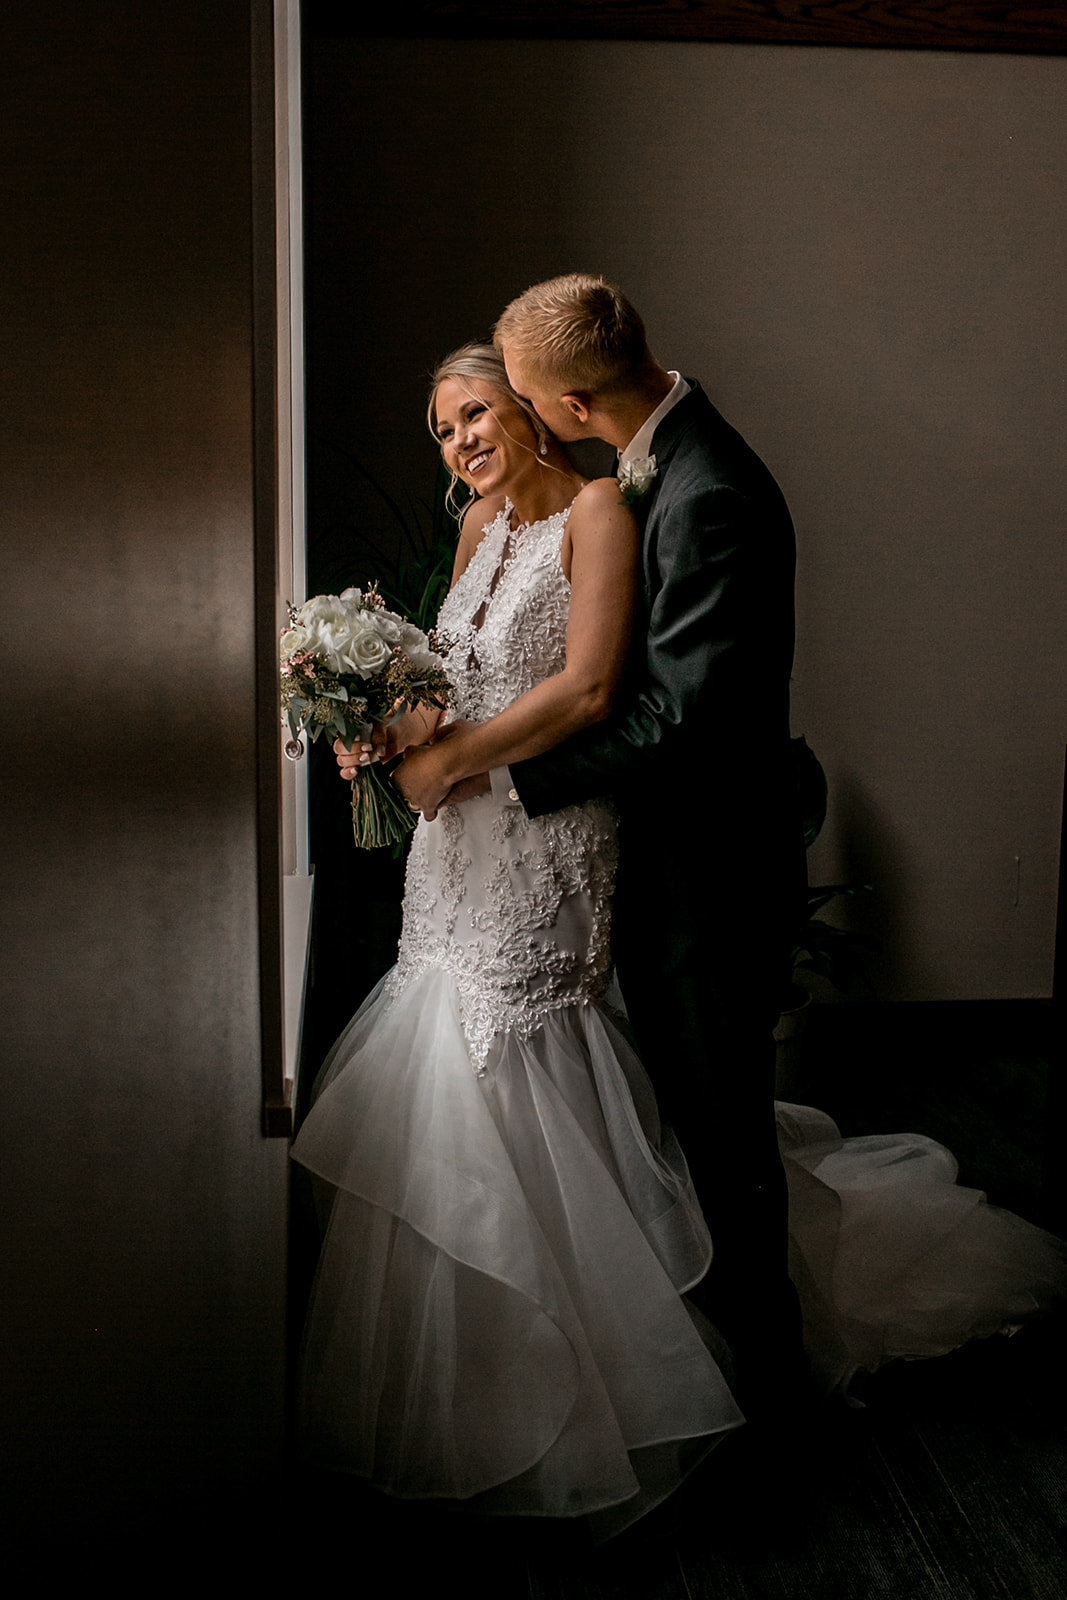 Des Moines Iowa wedding couple cuddling by the window.